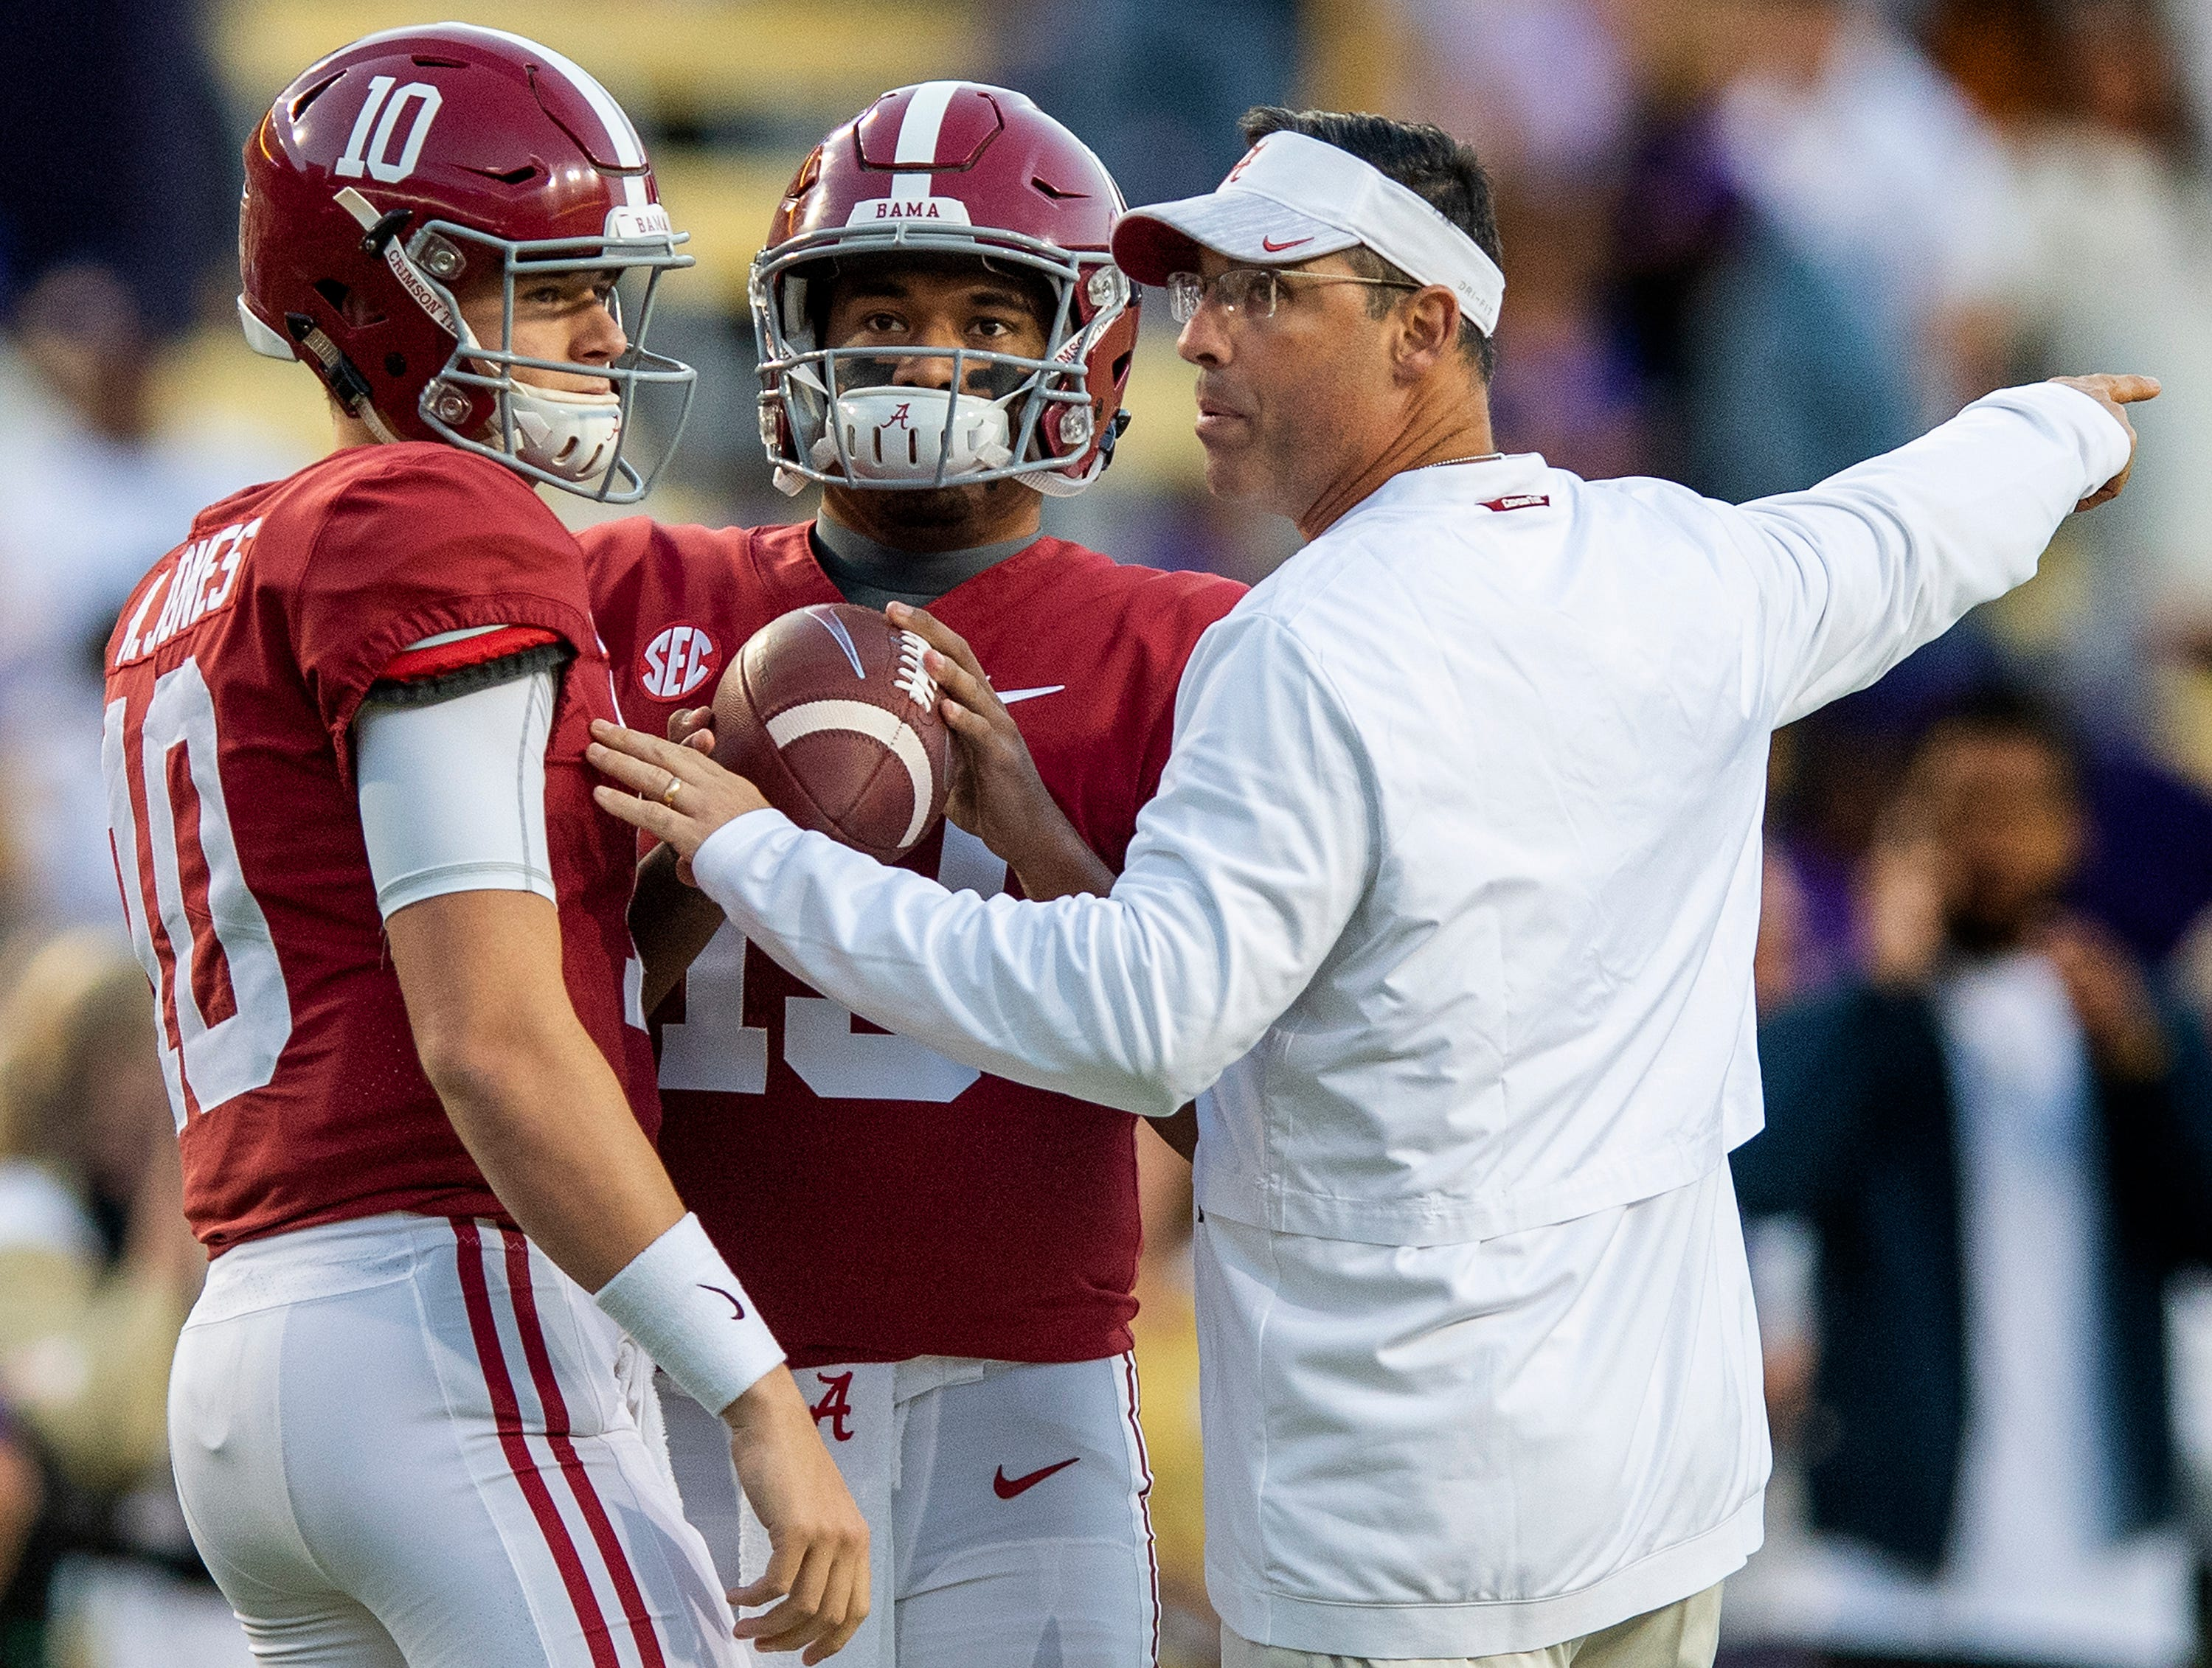 Alabama quarterback Tua Tagovailoa (13), quarterback Mac Jones (10) and quarterbacks coach Dan Enos before the LSU game at Tiger Stadium in Baton Rouge, La., on Saturday November 3, 2018.